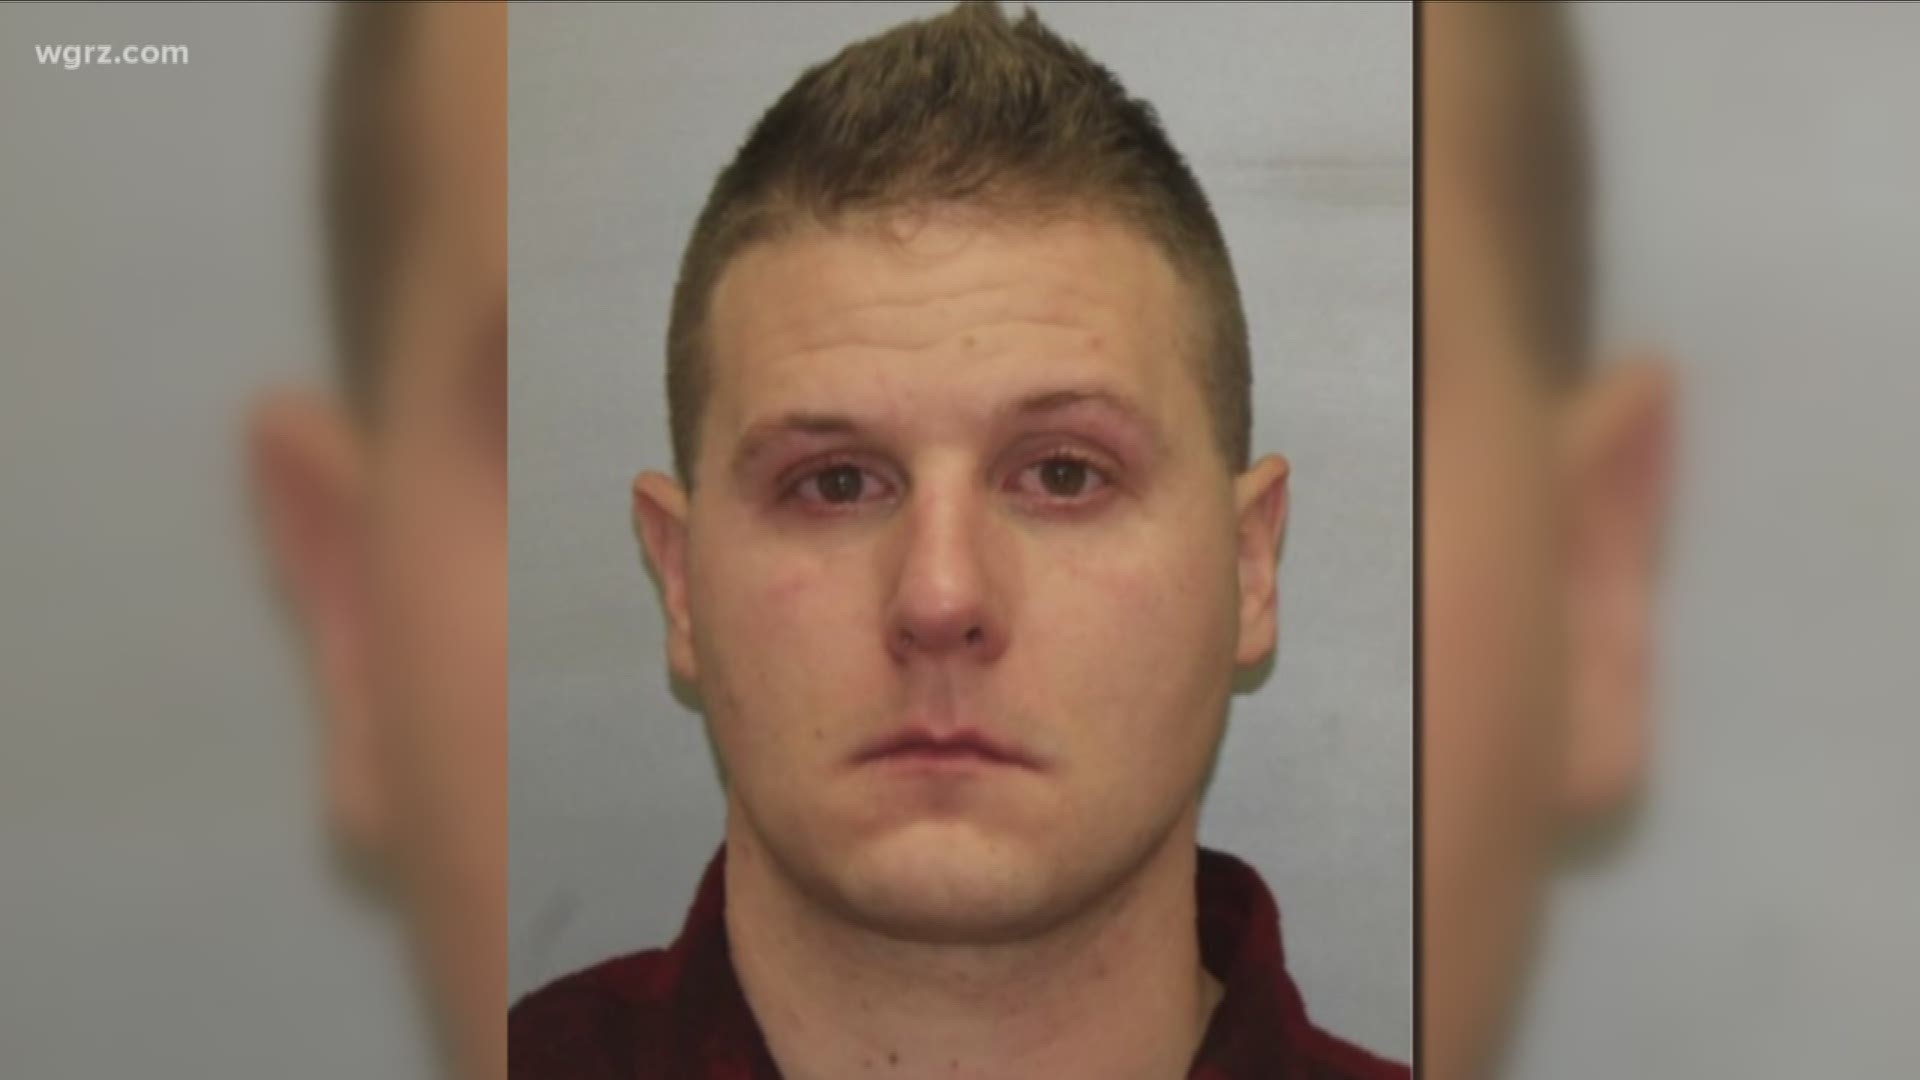 Lewiston Officer Accused Of Spying On Woman Wgrz Com Weather forecast in lewiston city. lewiston officer accused of spying on woman